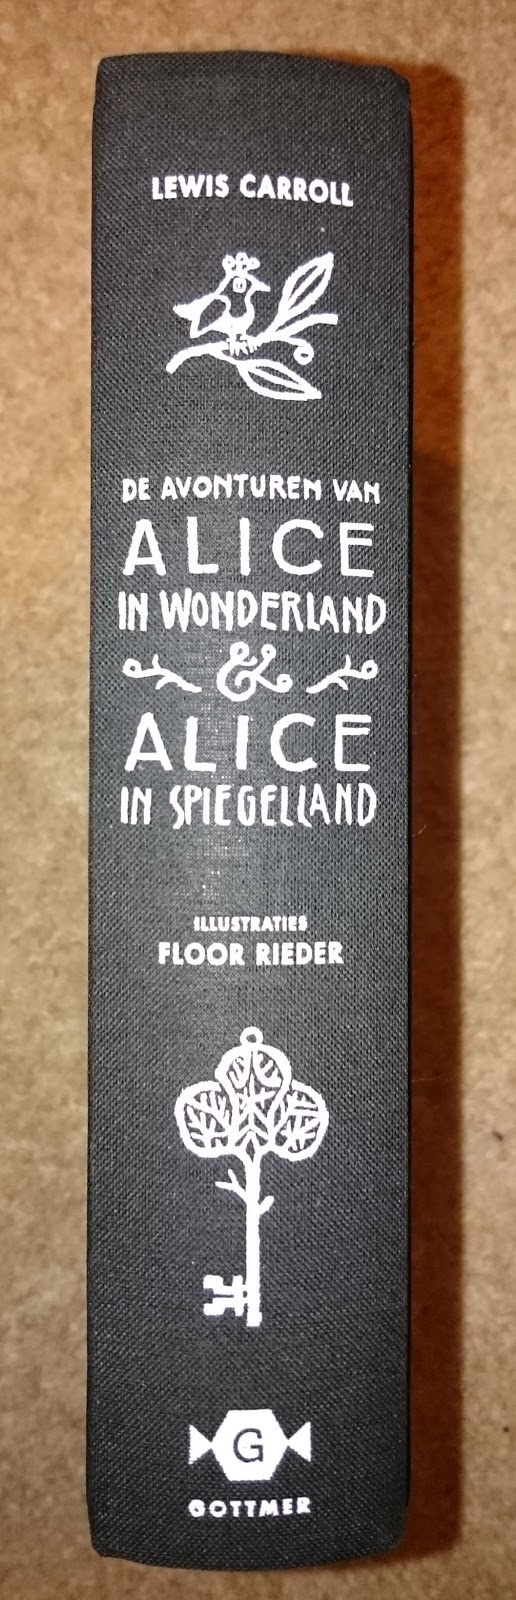 Best images about Alice s Adventures in Wonderland on Pinterest     Frantically Jenny Frances   WordPress com lewis carroll     in a world of my own